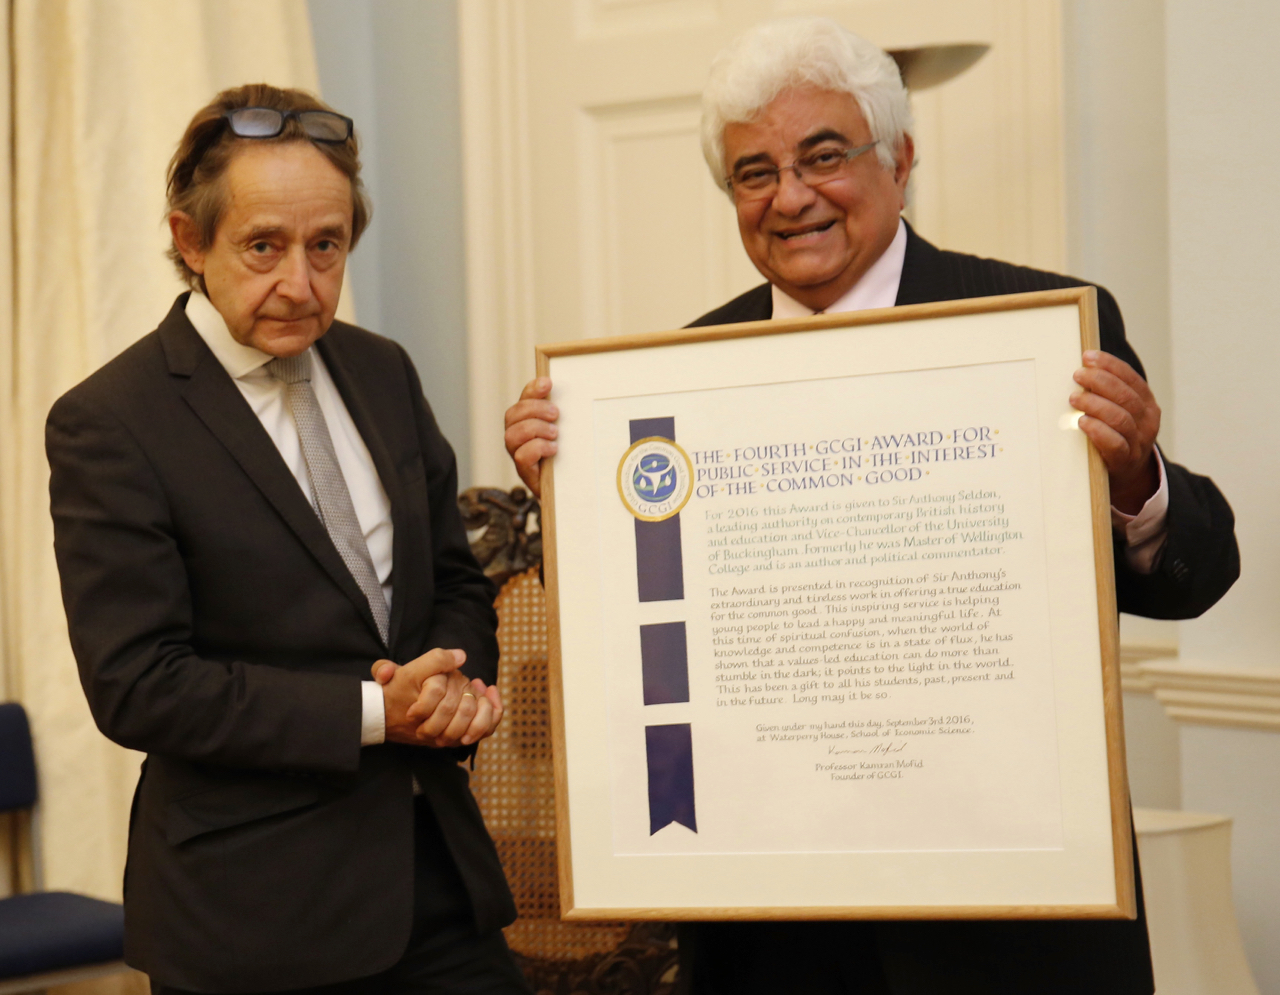 Buy zofran online canada.doc - Sir Anthony Seldon Receives Fourth Gcgi Award For Public Service In The Interest Of The Common Good